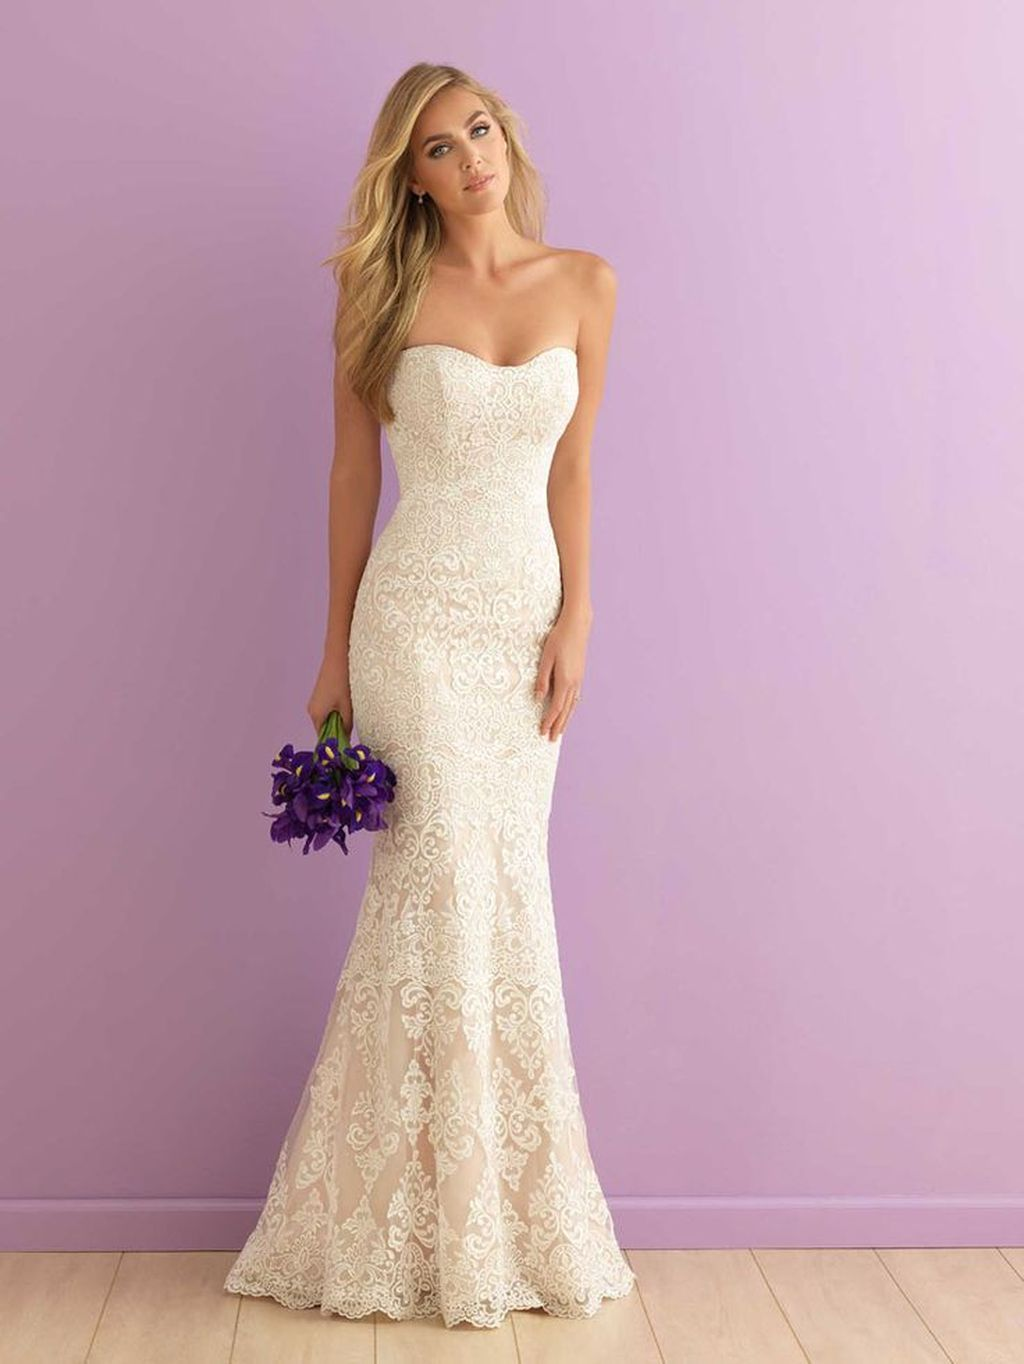 beautiful princess mermaid wedding dress ideas mermaid wedding